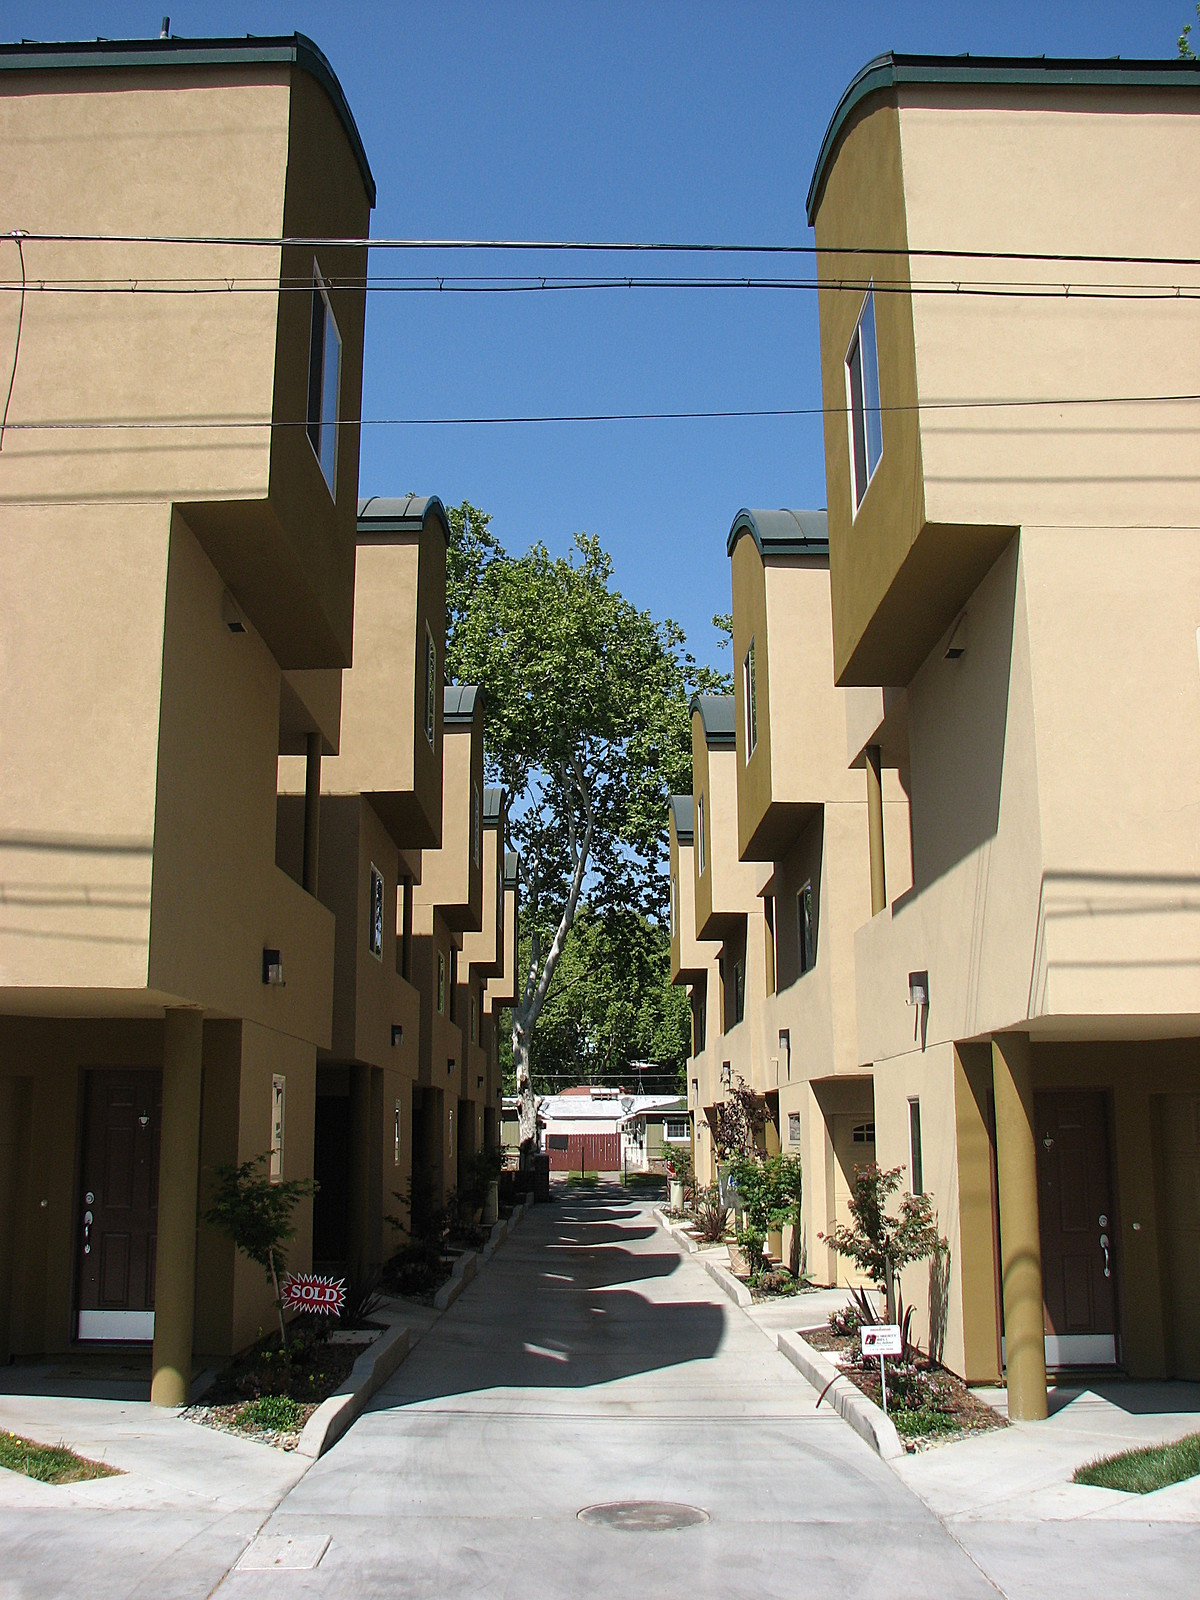 Southside Urban Villa's; central alley driveway